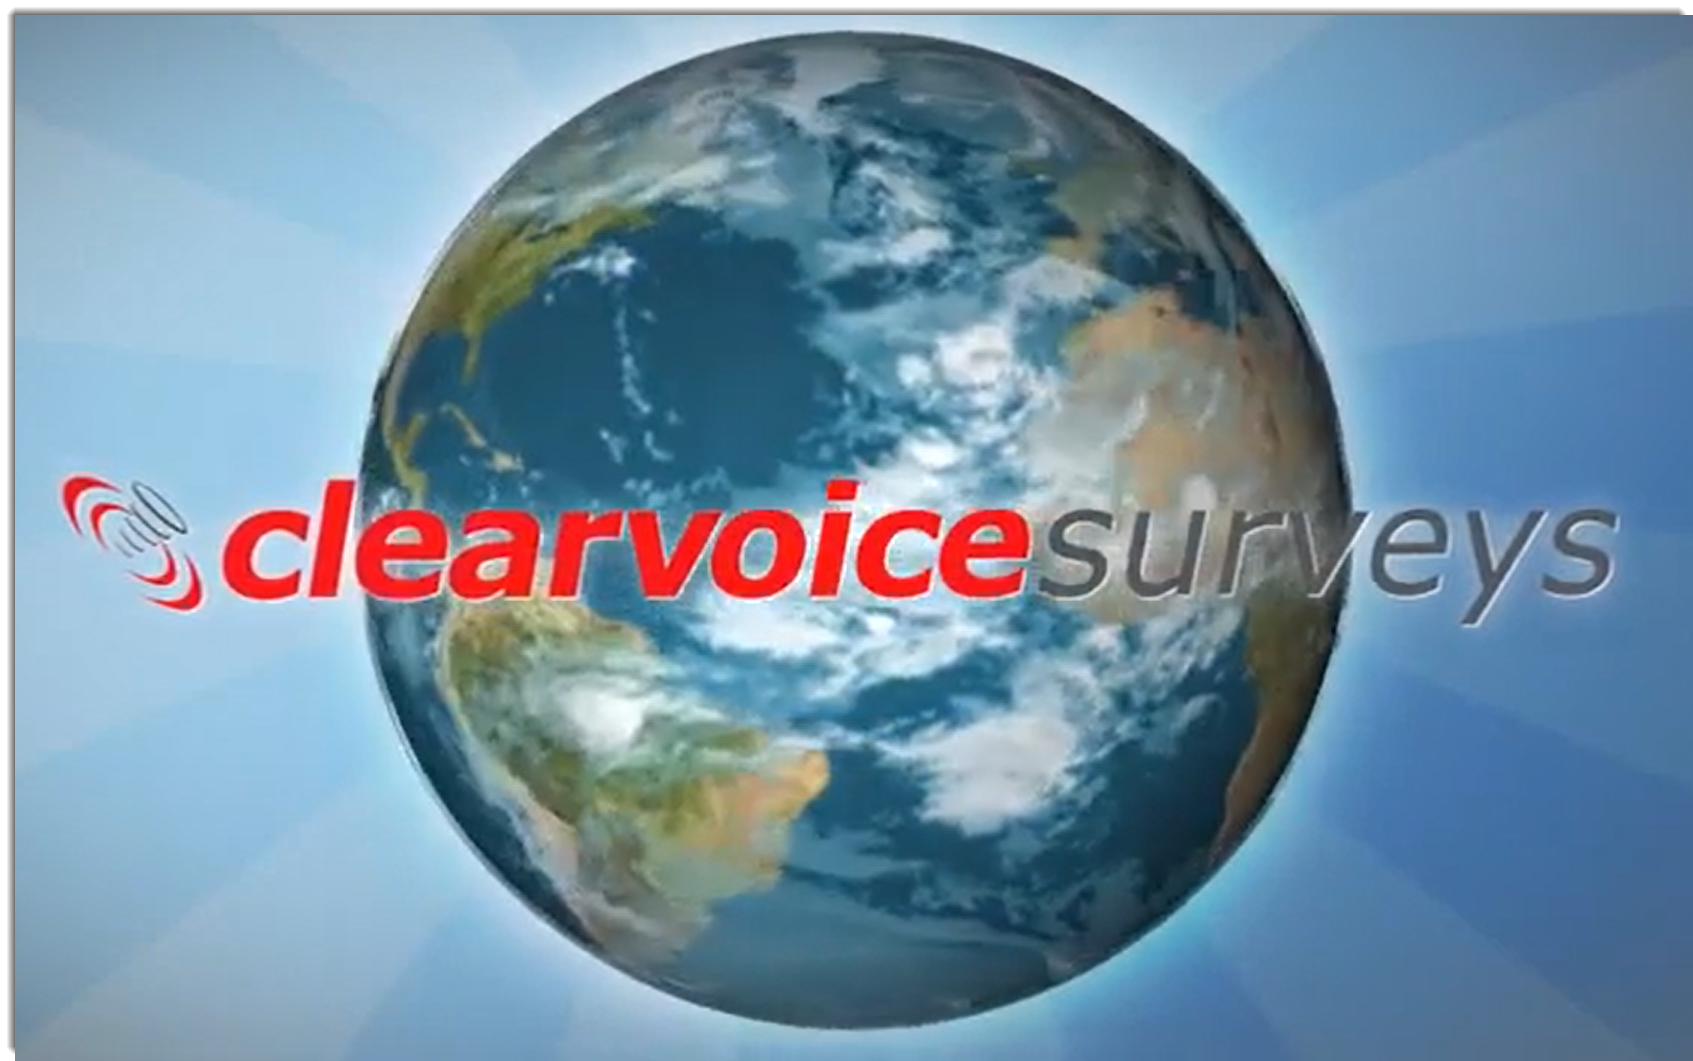 nice global image of clearvocie surveys